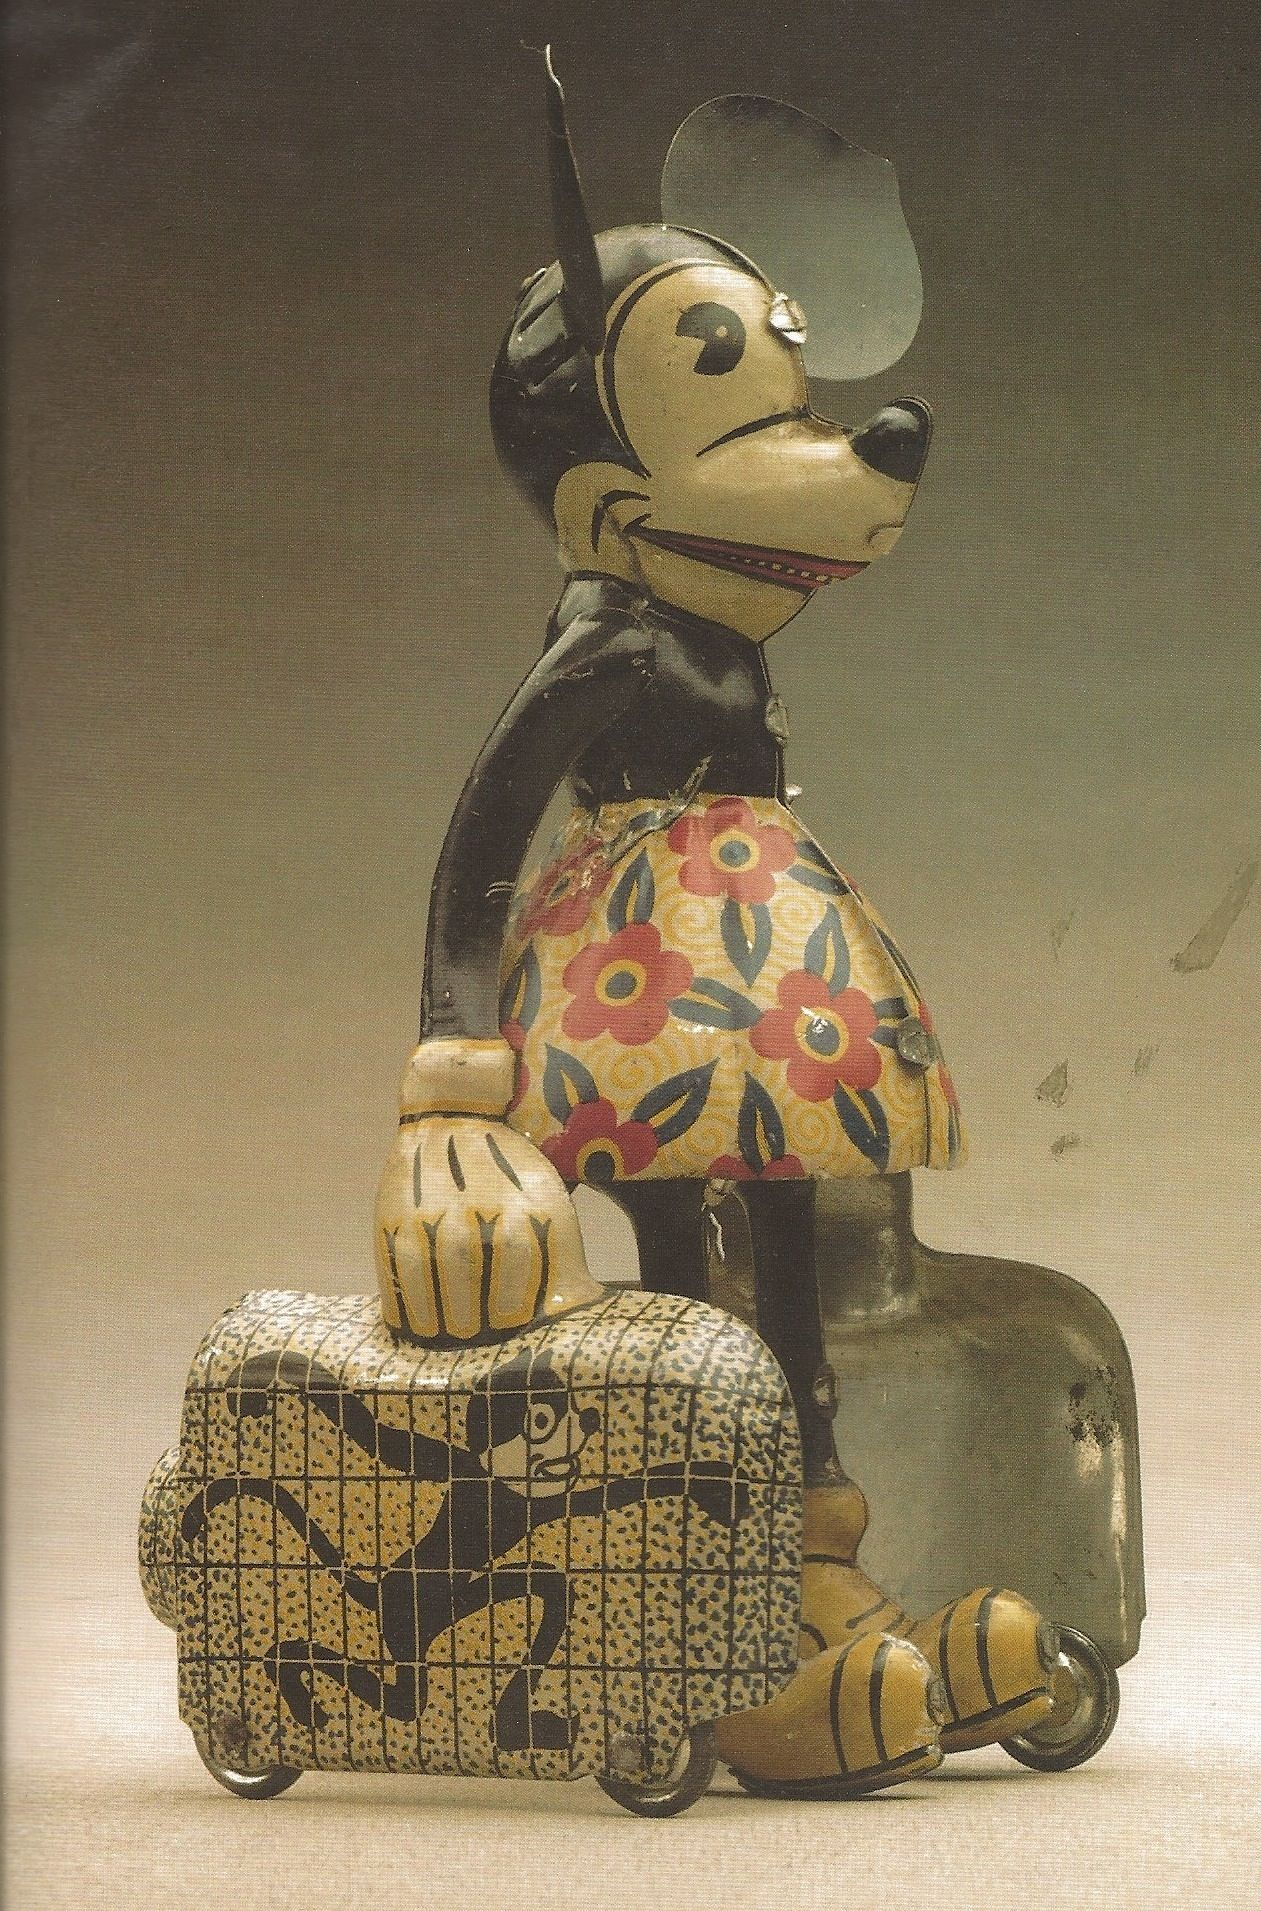 Rare 1930s windup toy. When Minnie leave on vacation, she